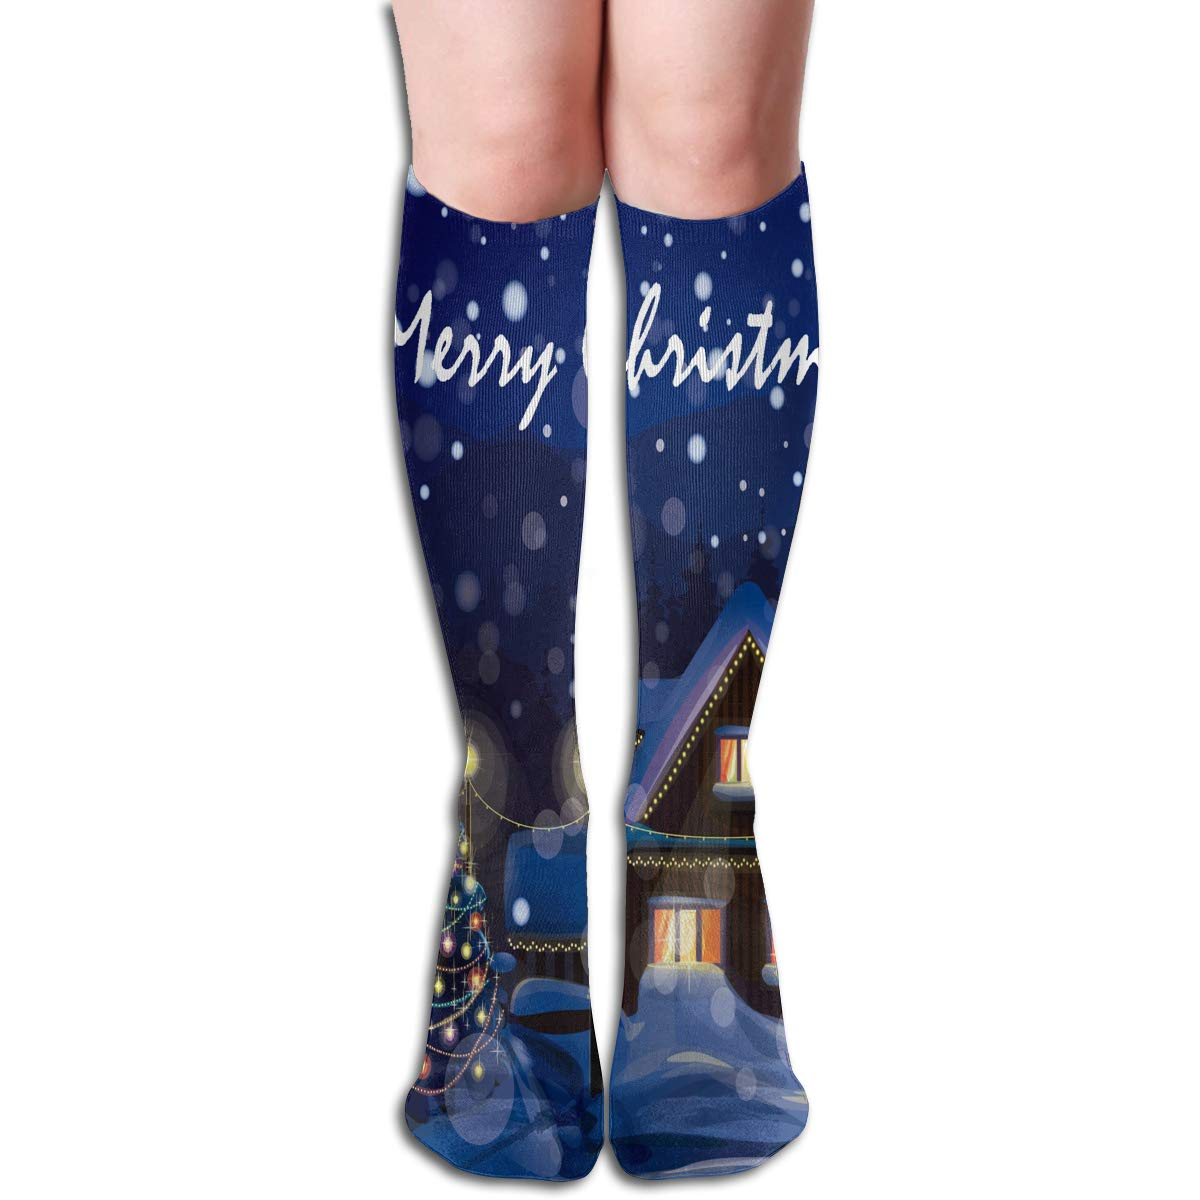 Women Socks Mid-Calf Christmas Mystery Gift Winter Warmth Personalized For Festive